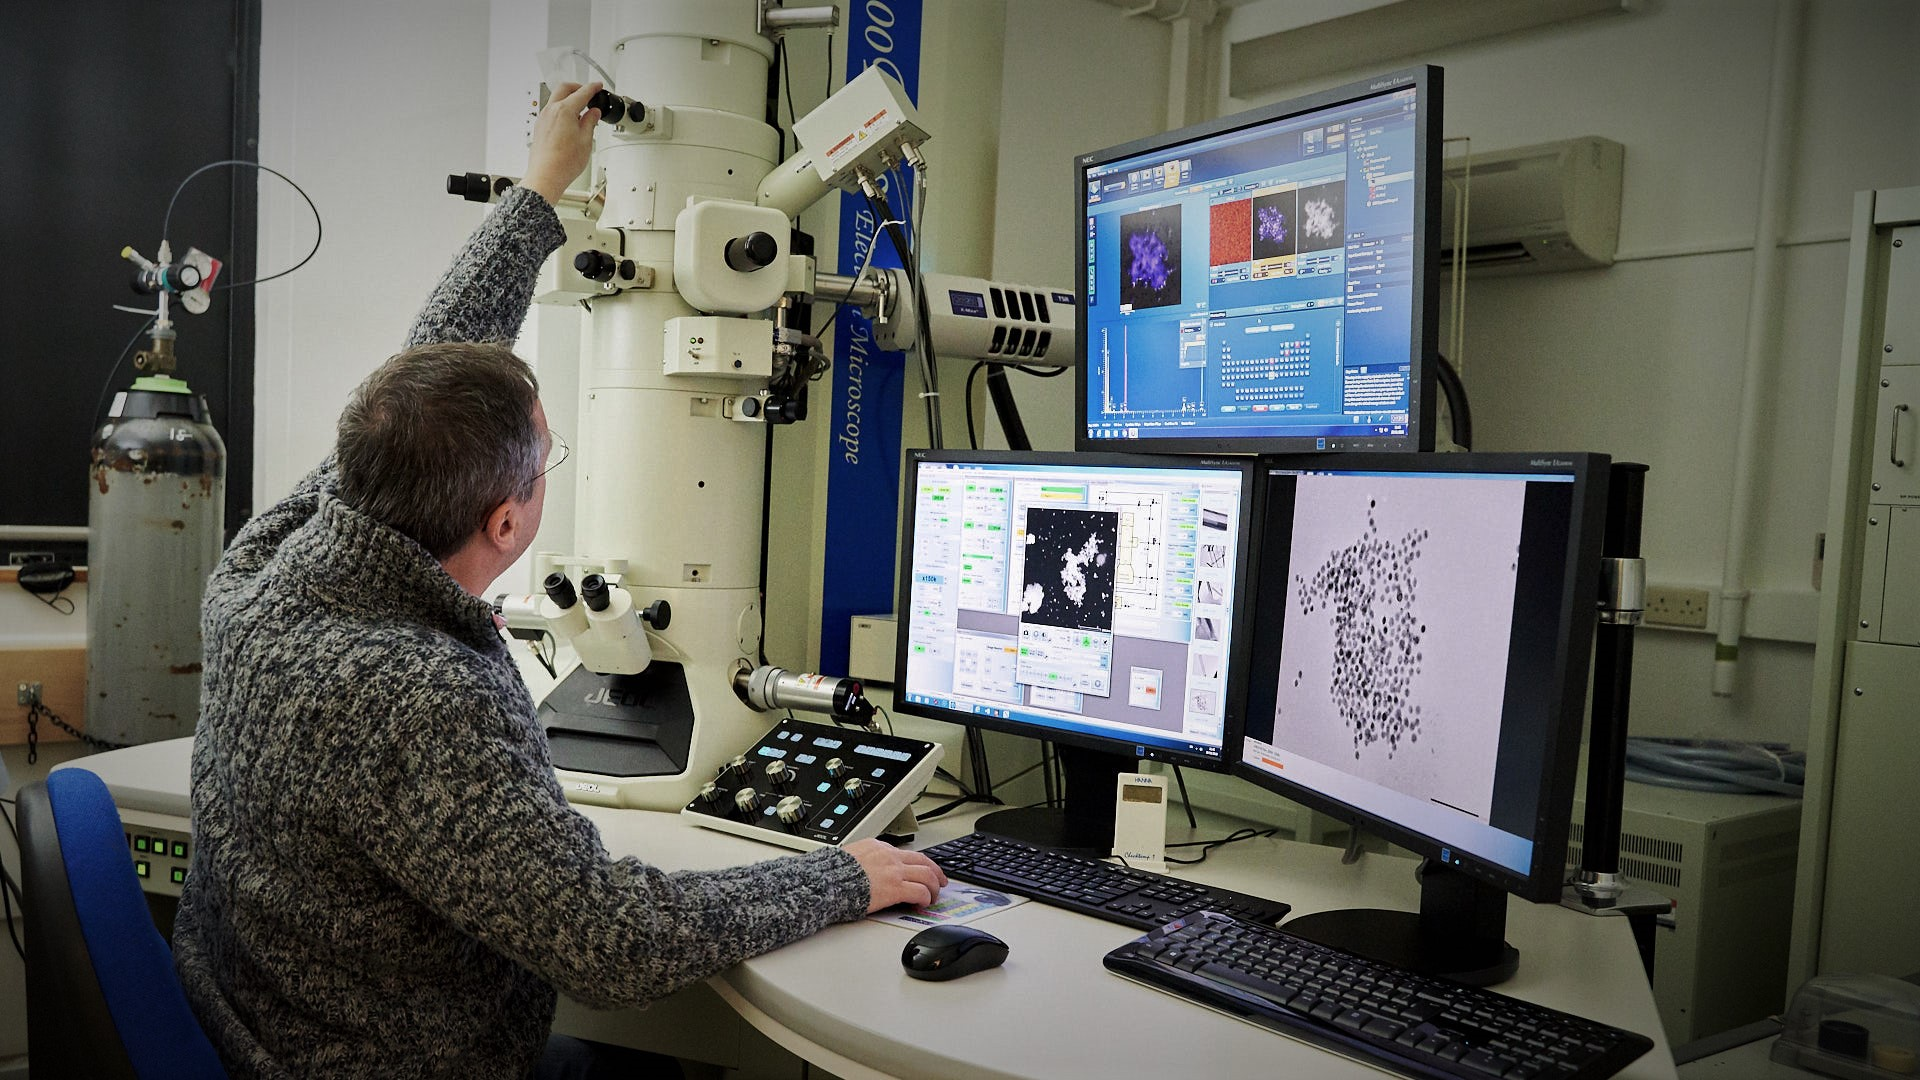 JEOL 2010PLUS Transmission Electron Microscope